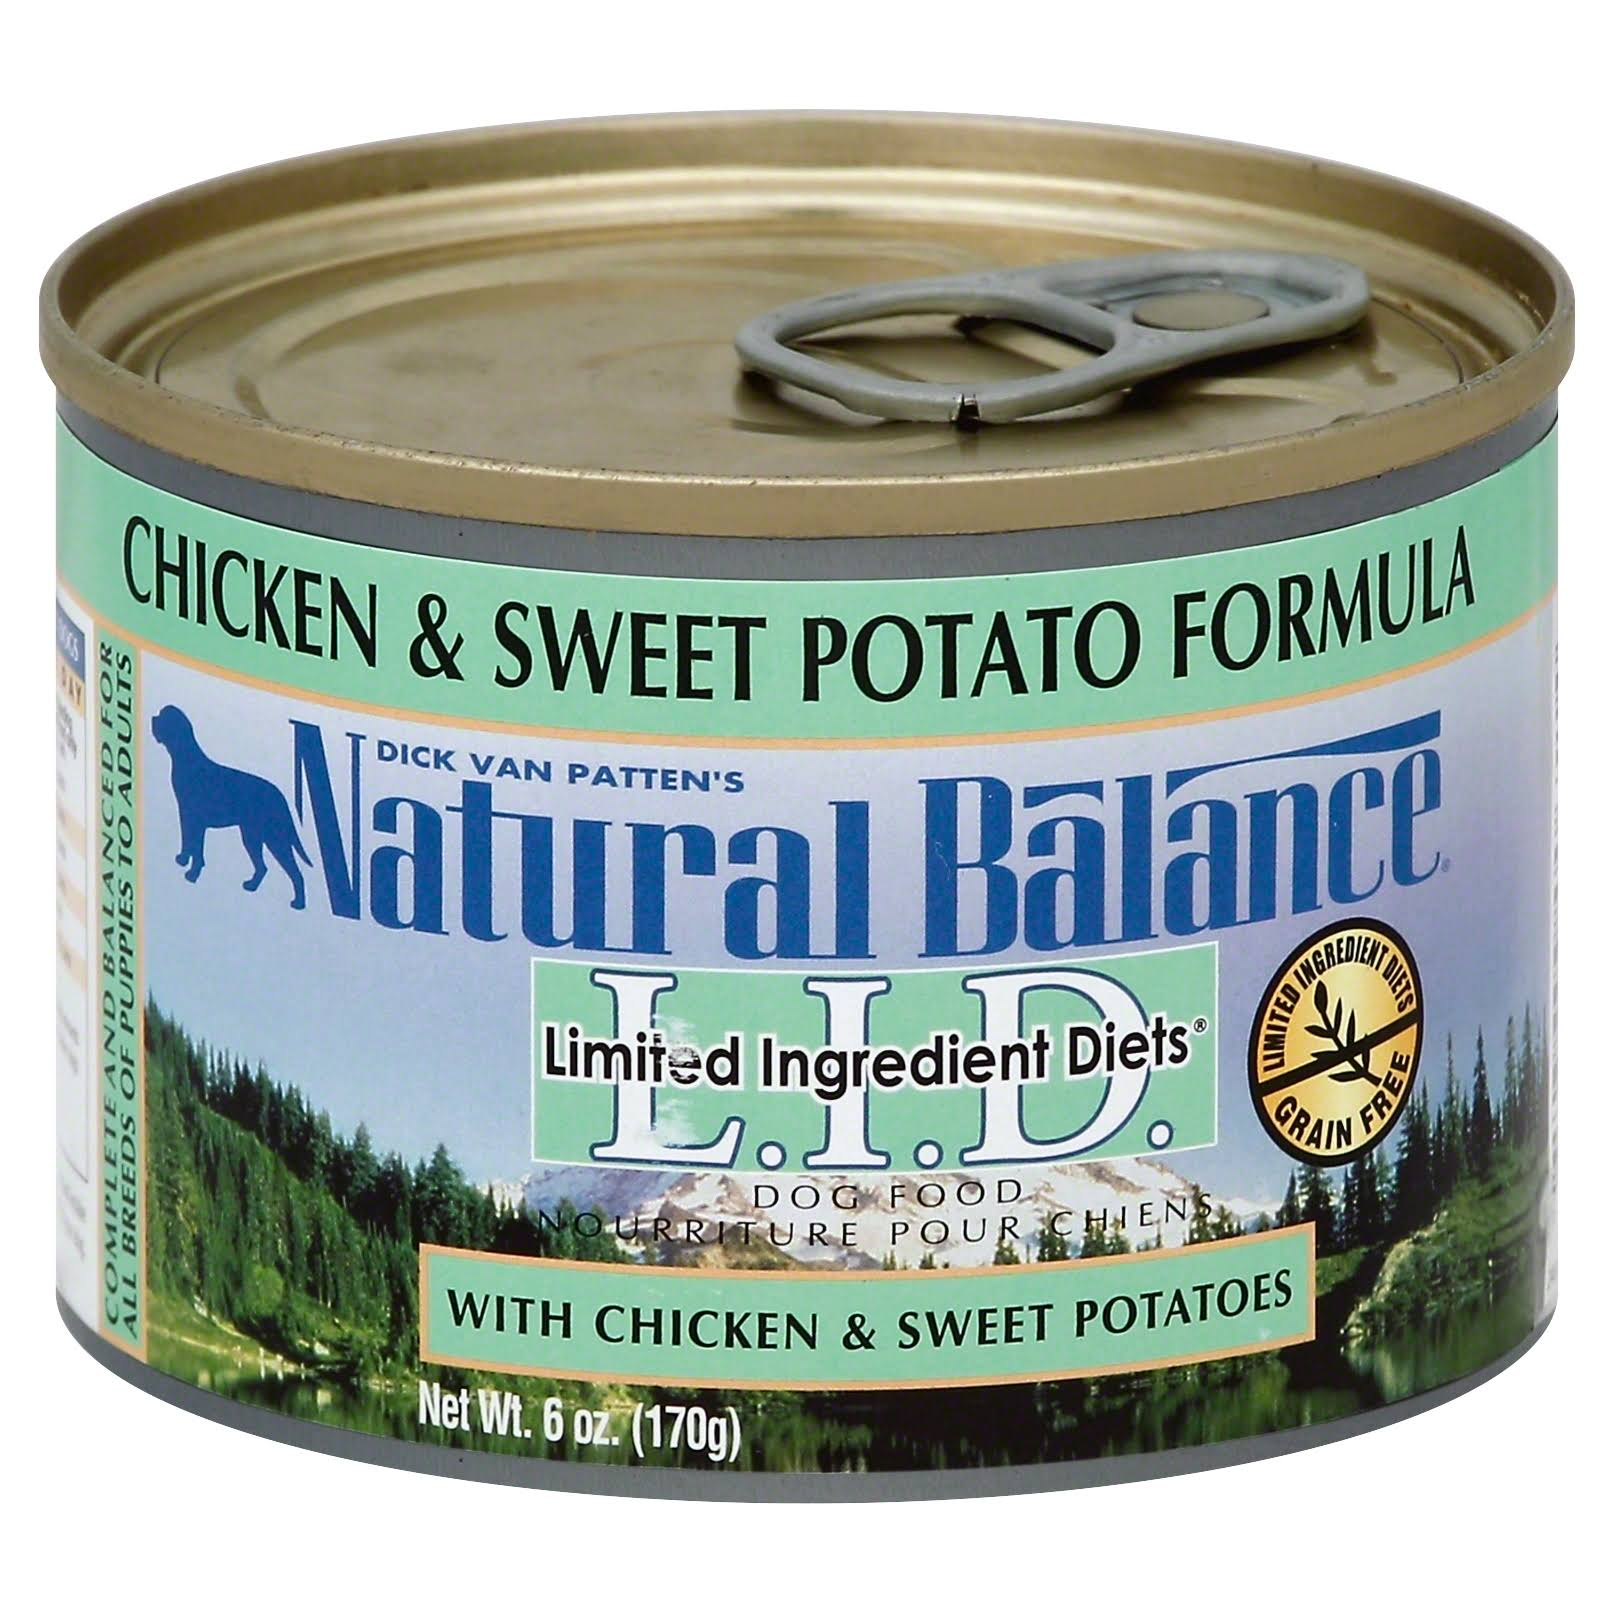 Natural Balance Limited Ingredient Diets Canned Wet Dog Food - Chicken and Sweet Potato Formula, 6oz